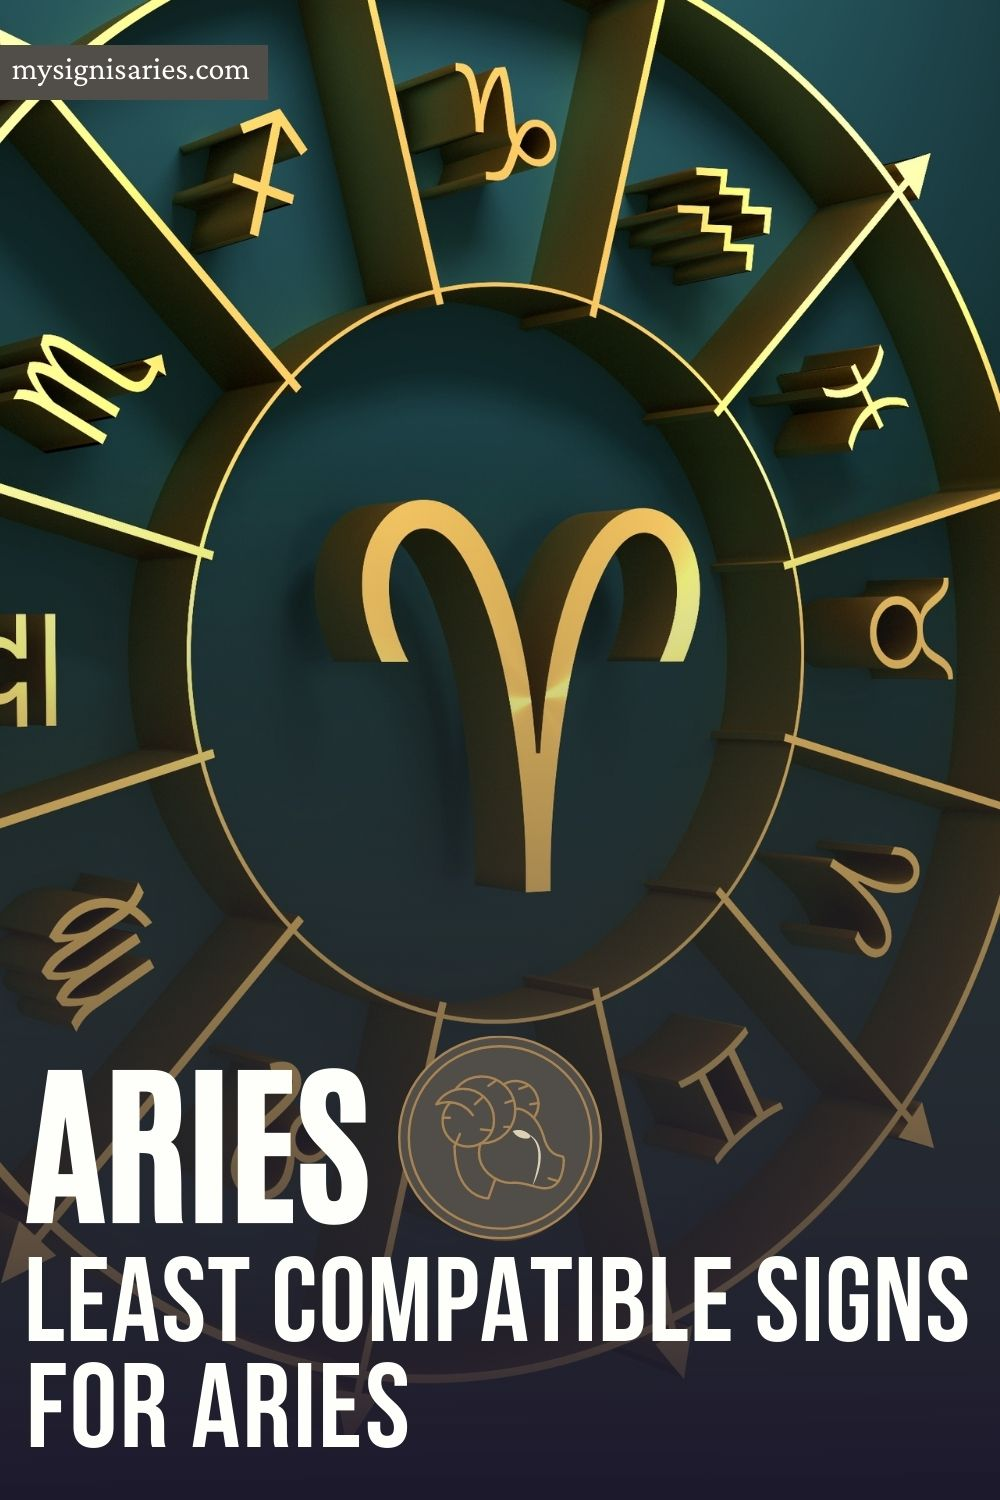 Zodiac Signs That Are Least Compatible With An Aries Sign, Aries compatibility